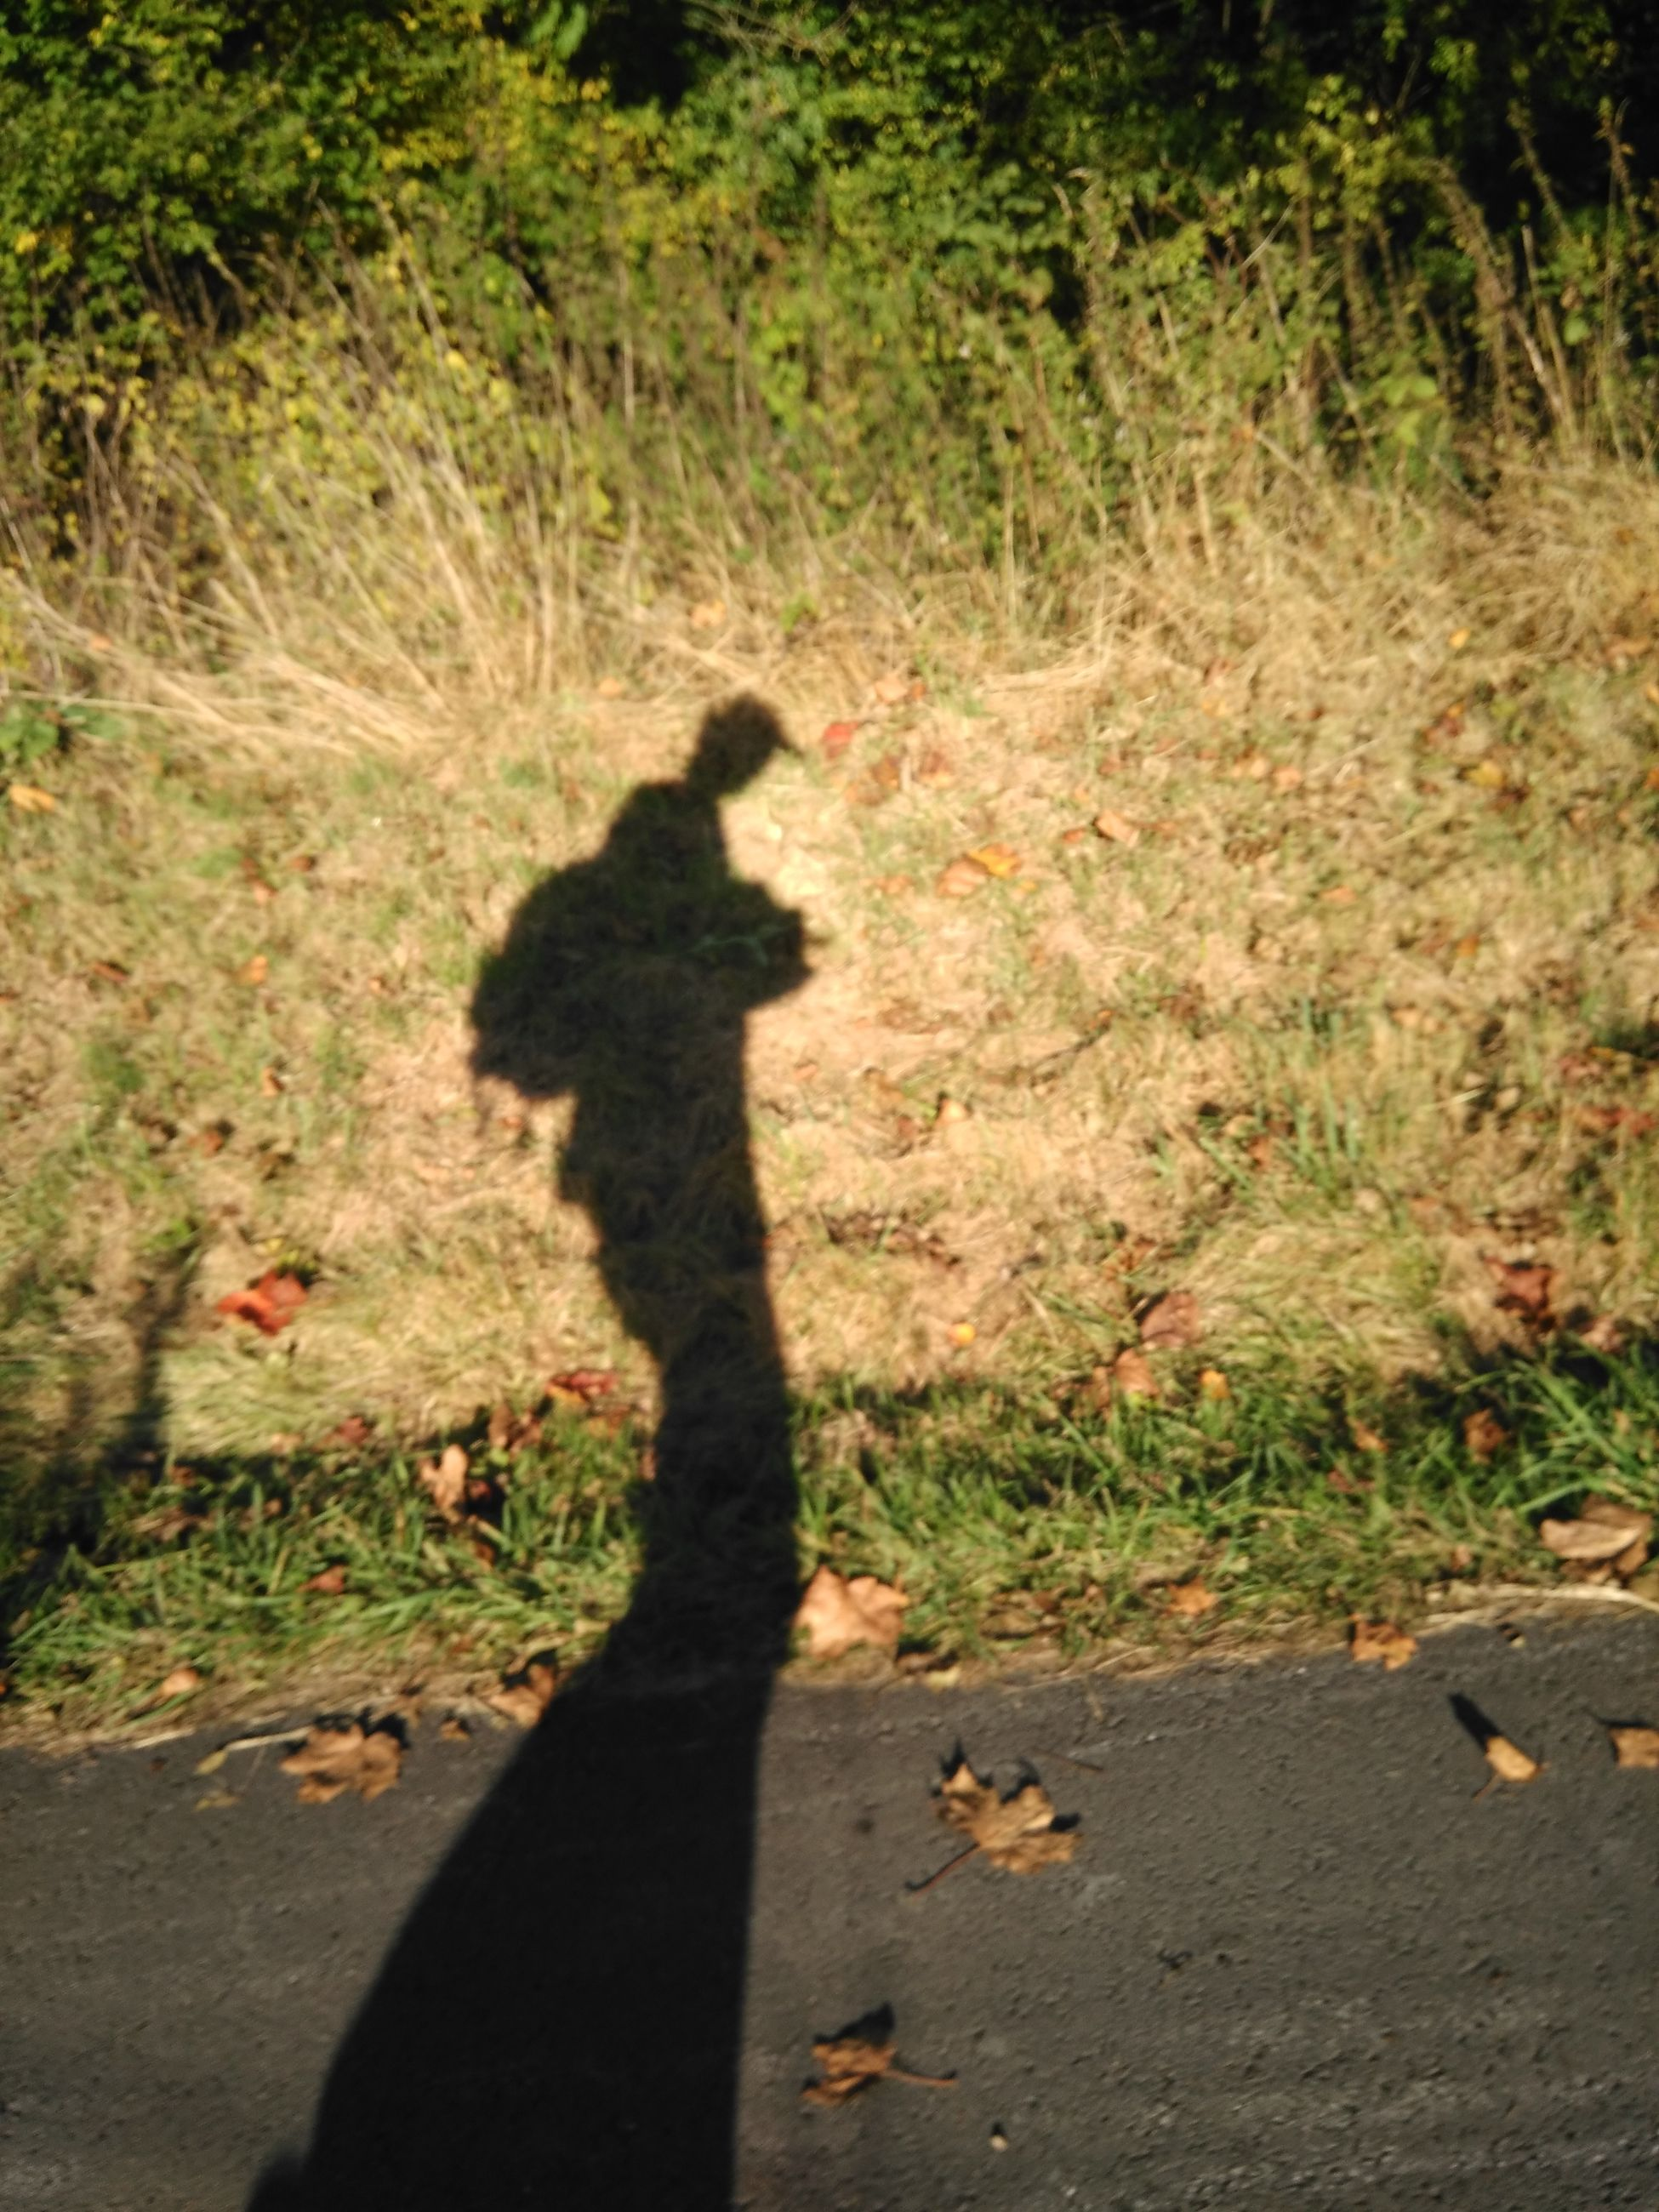 shadow, sunlight, real people, focus on shadow, one person, lifestyles, leisure activity, day, outdoors, nature, men, one animal, standing, pets, tree, dog, grass, mammal